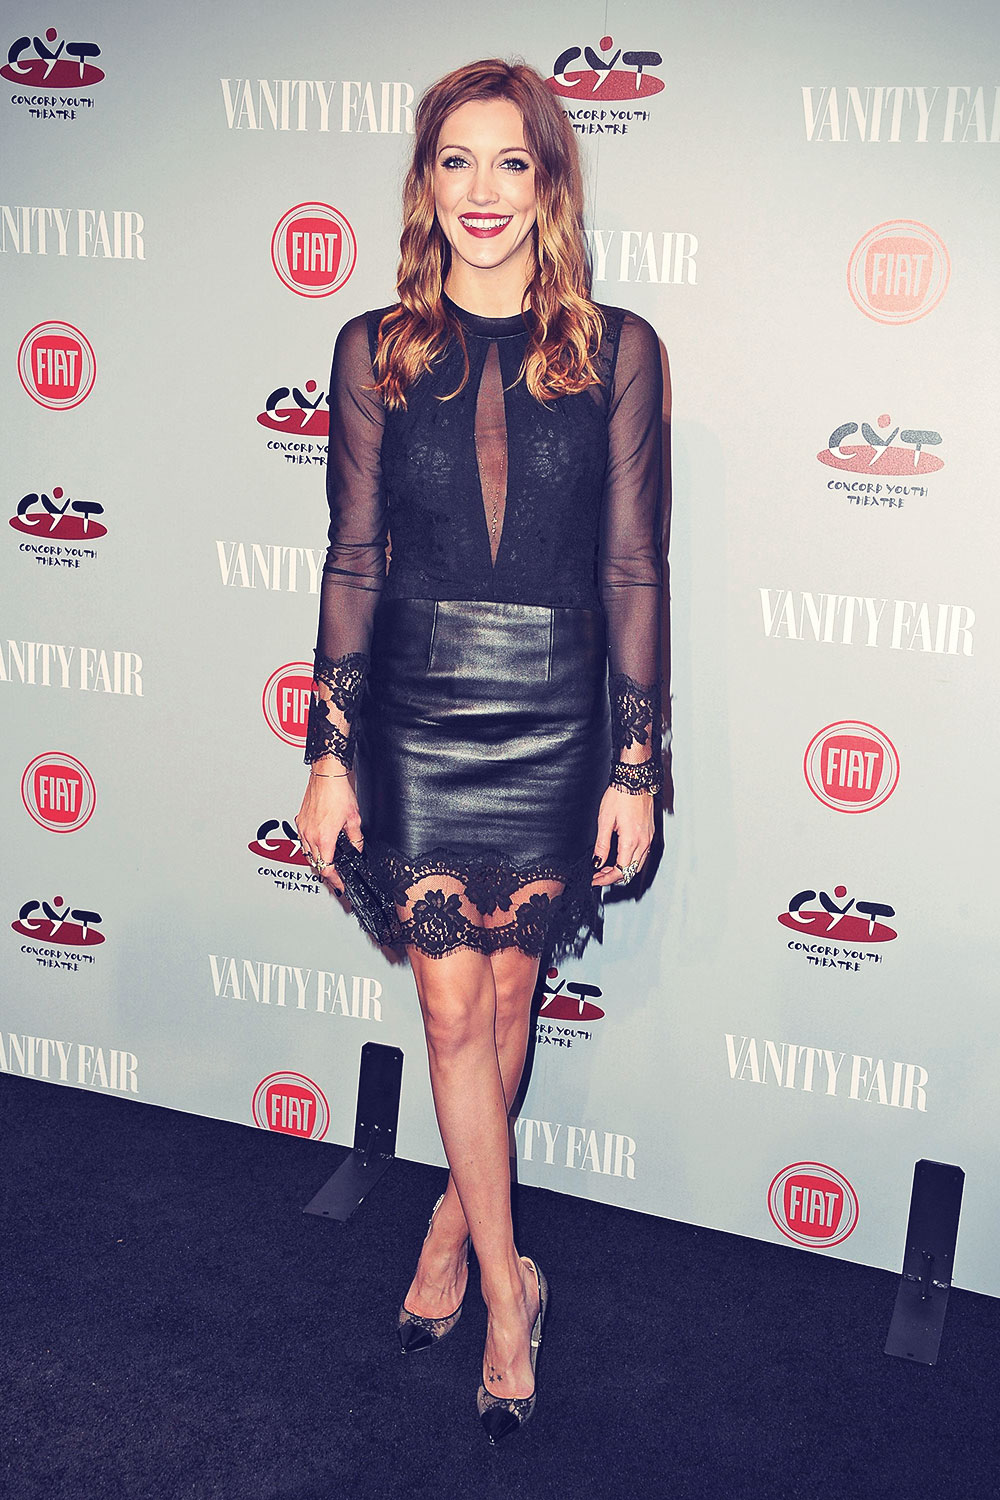 Katie Cassidy attends Vanity Fair & FIAT Young Hollywood event